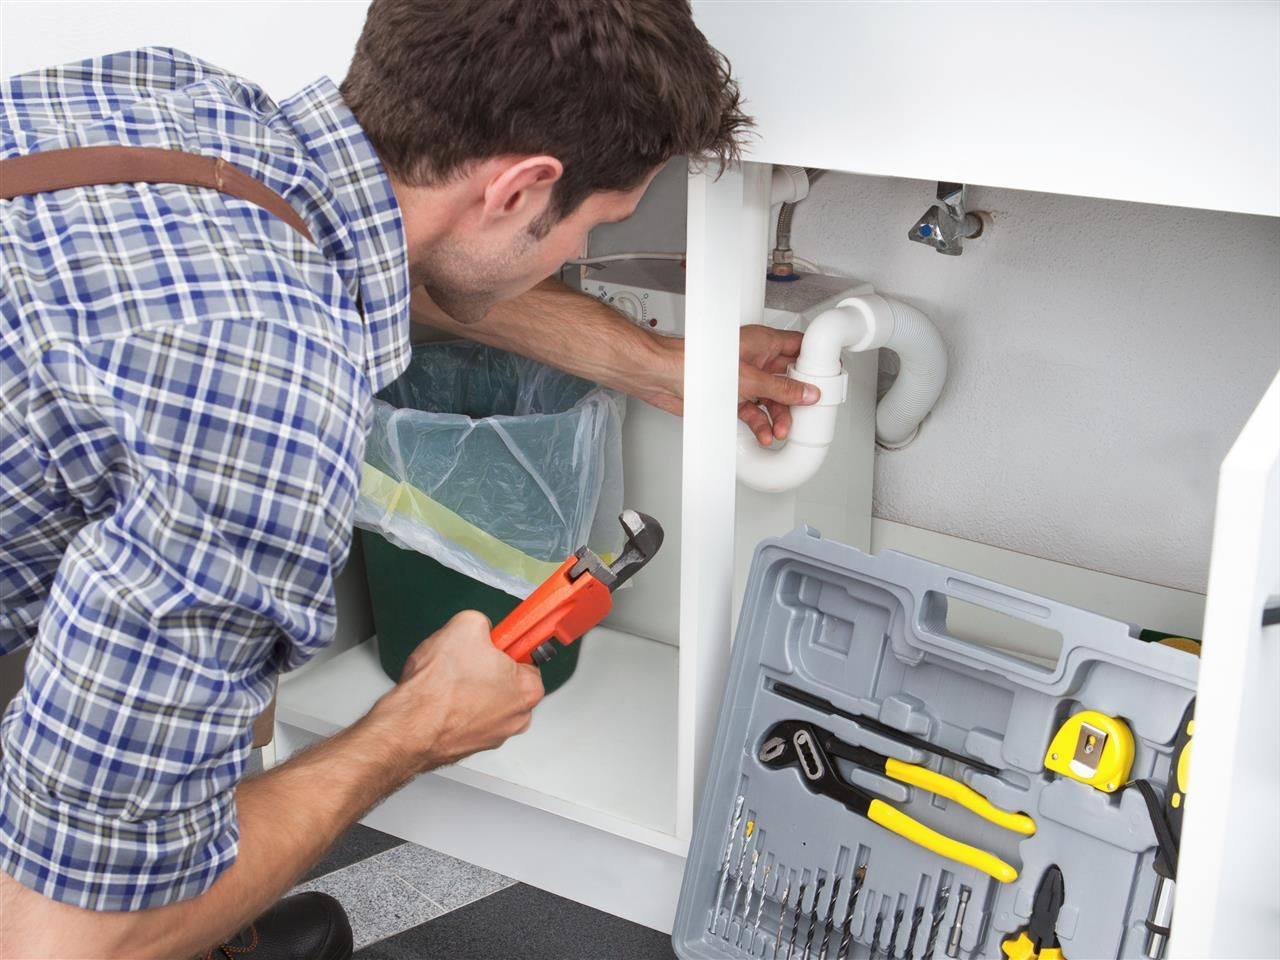 5 plumbing repairs your home needs with images